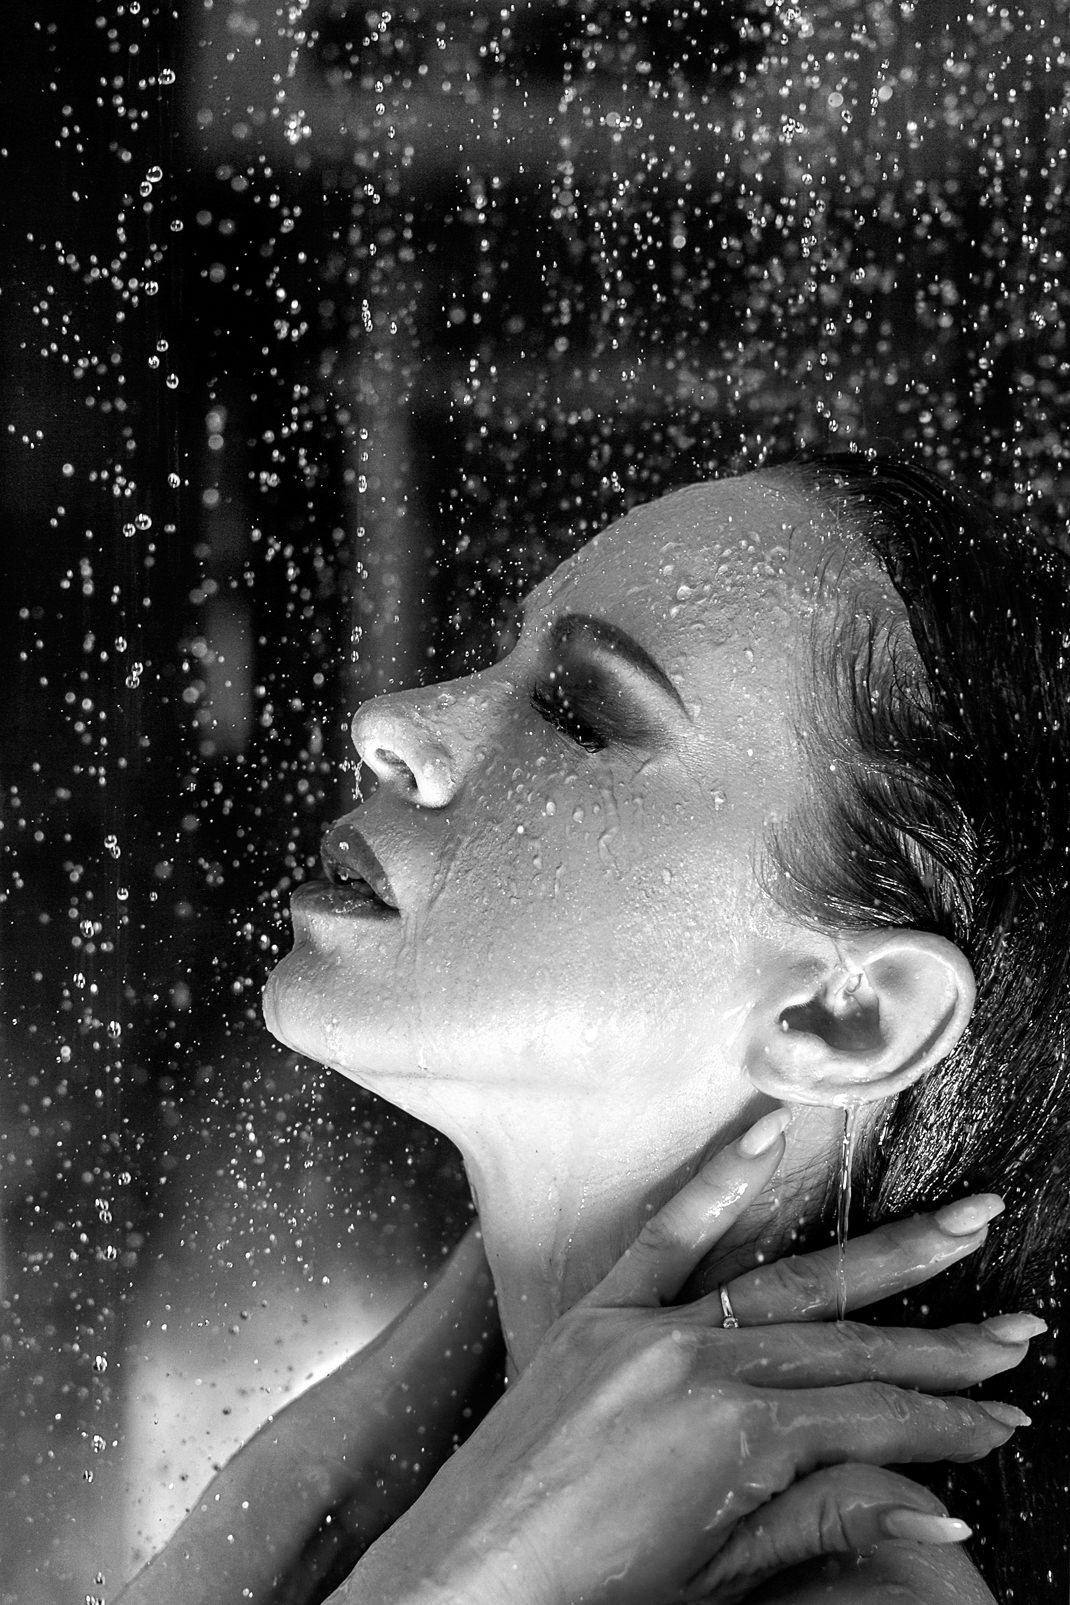 Portrait - Markus Hertzsch - B&W - Girl - Model - Bildlook - Face - Pose - Art - Hair - Eyes - Water - Drop - Shower - Cooling - Wet